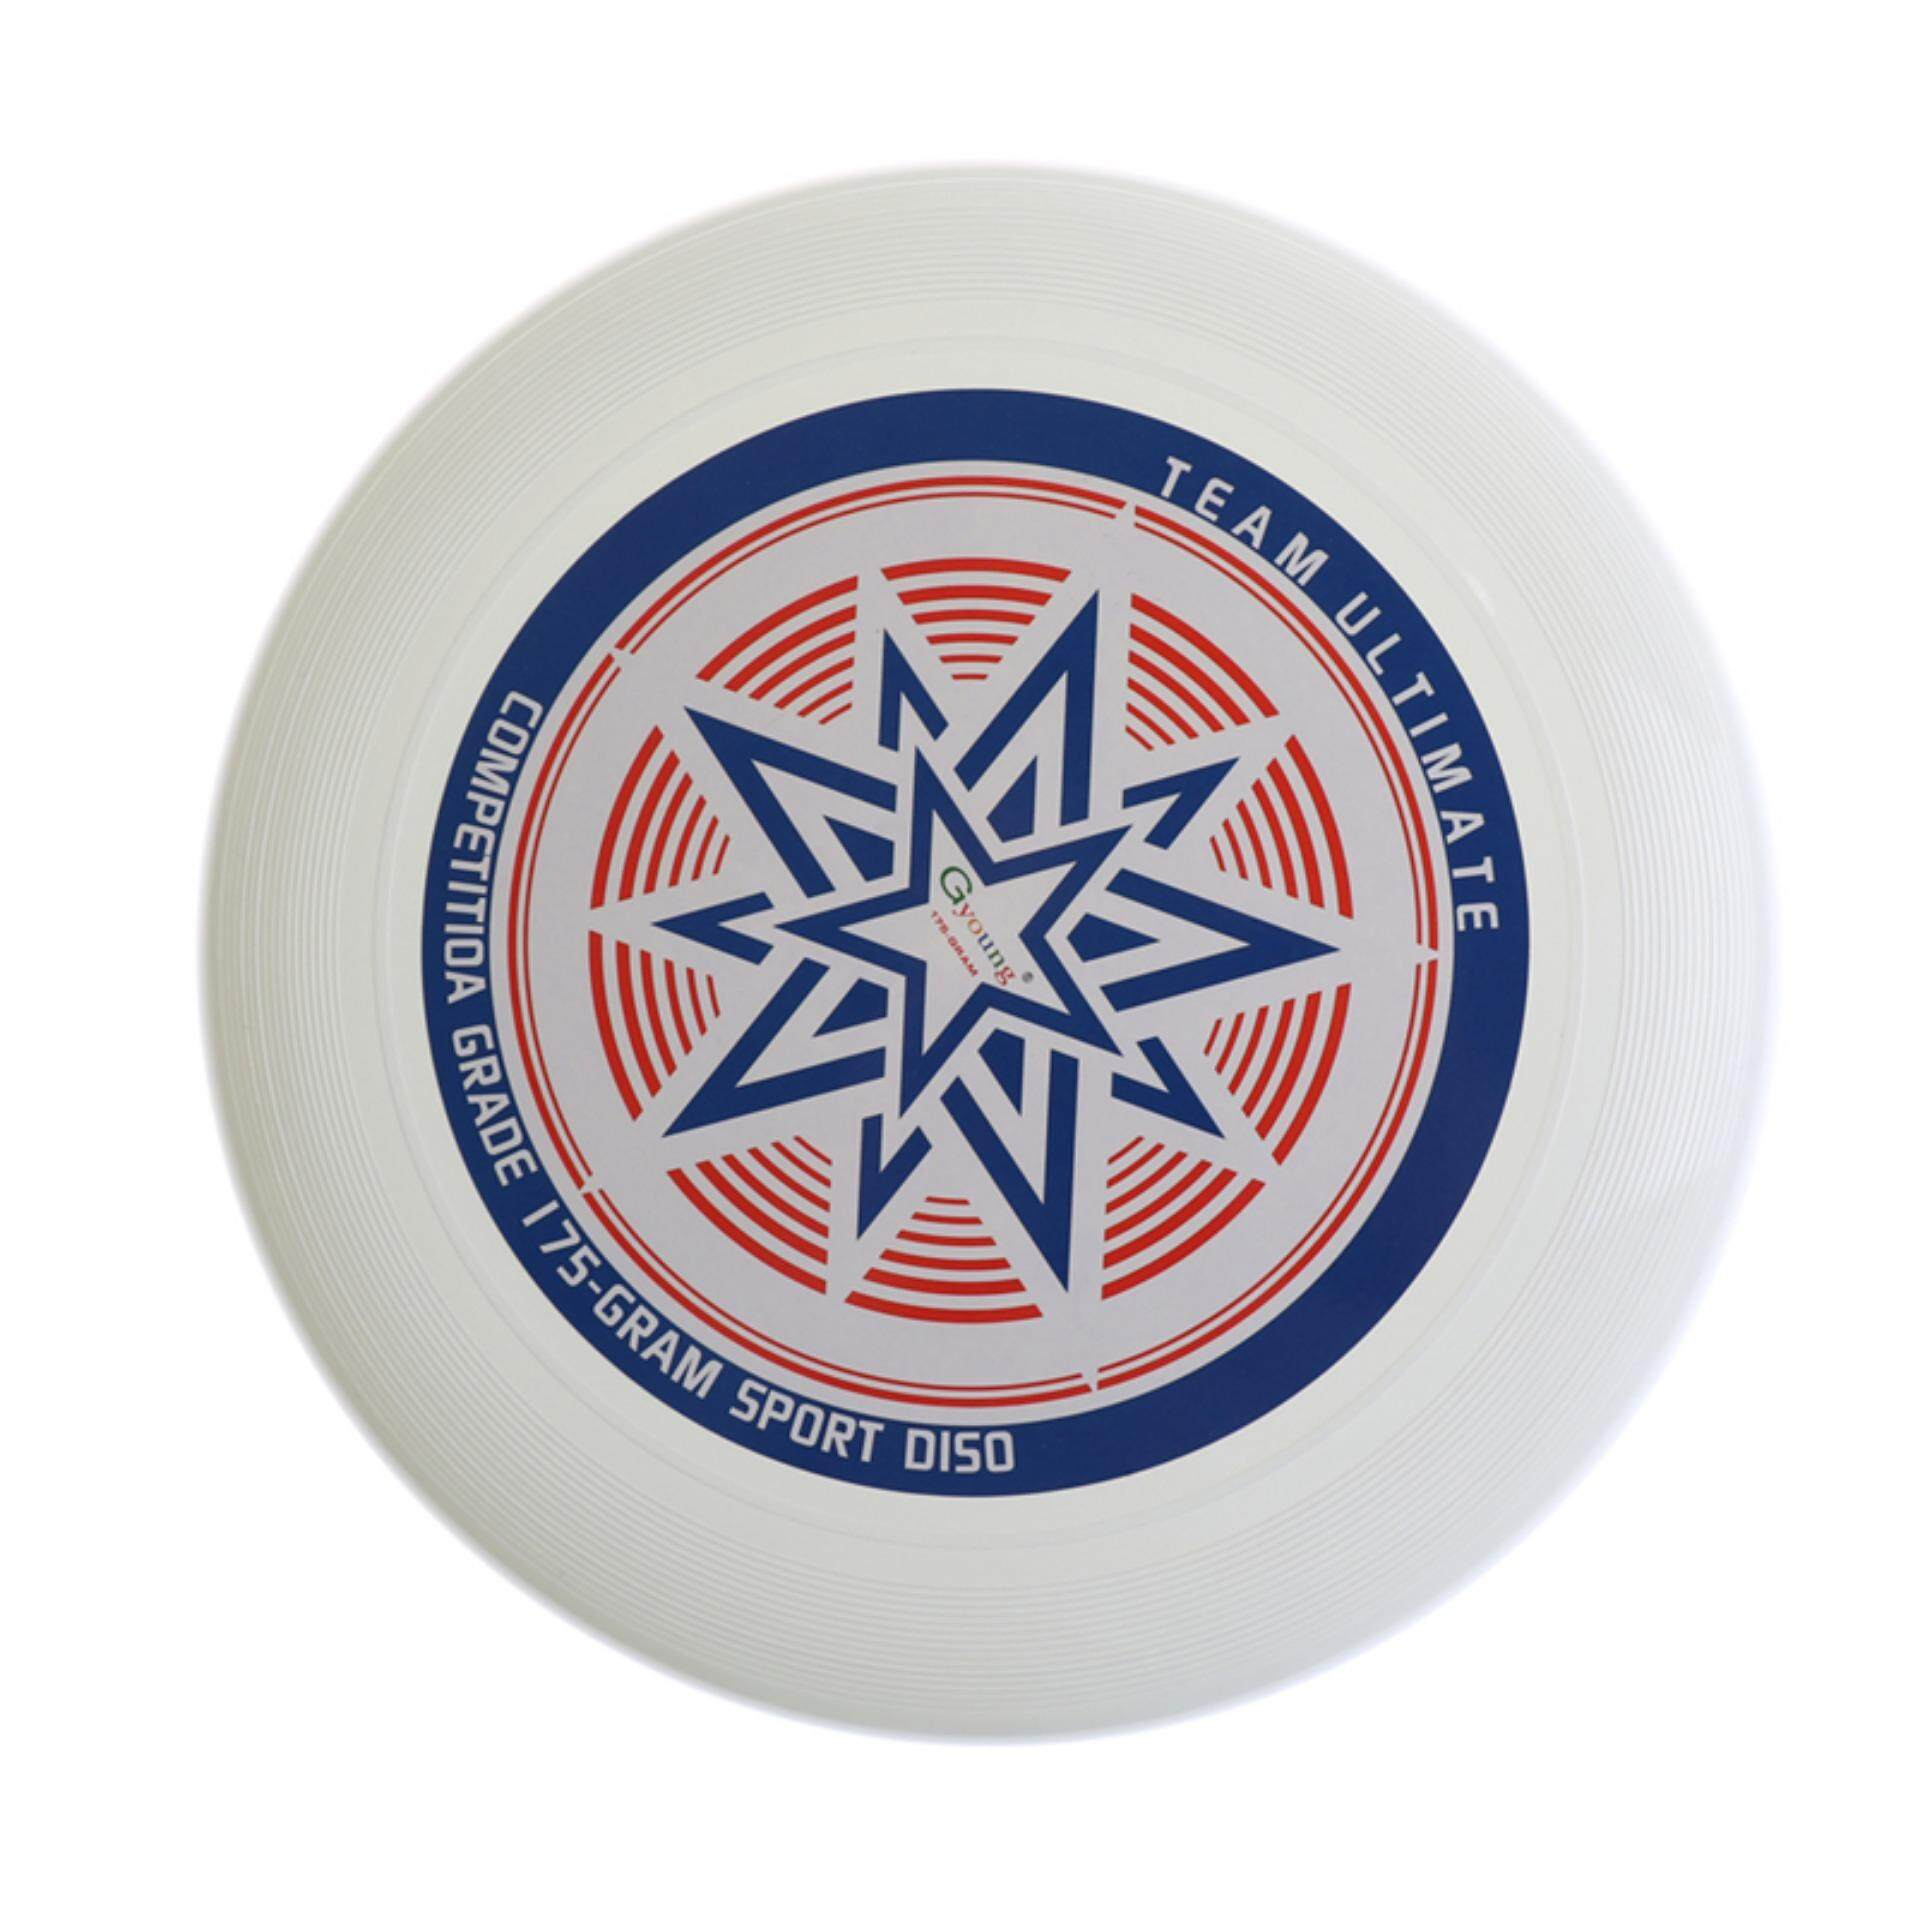 Frisbee Flying Disc Flying Saucer Outdoor Leisure Outdoor Game Play image